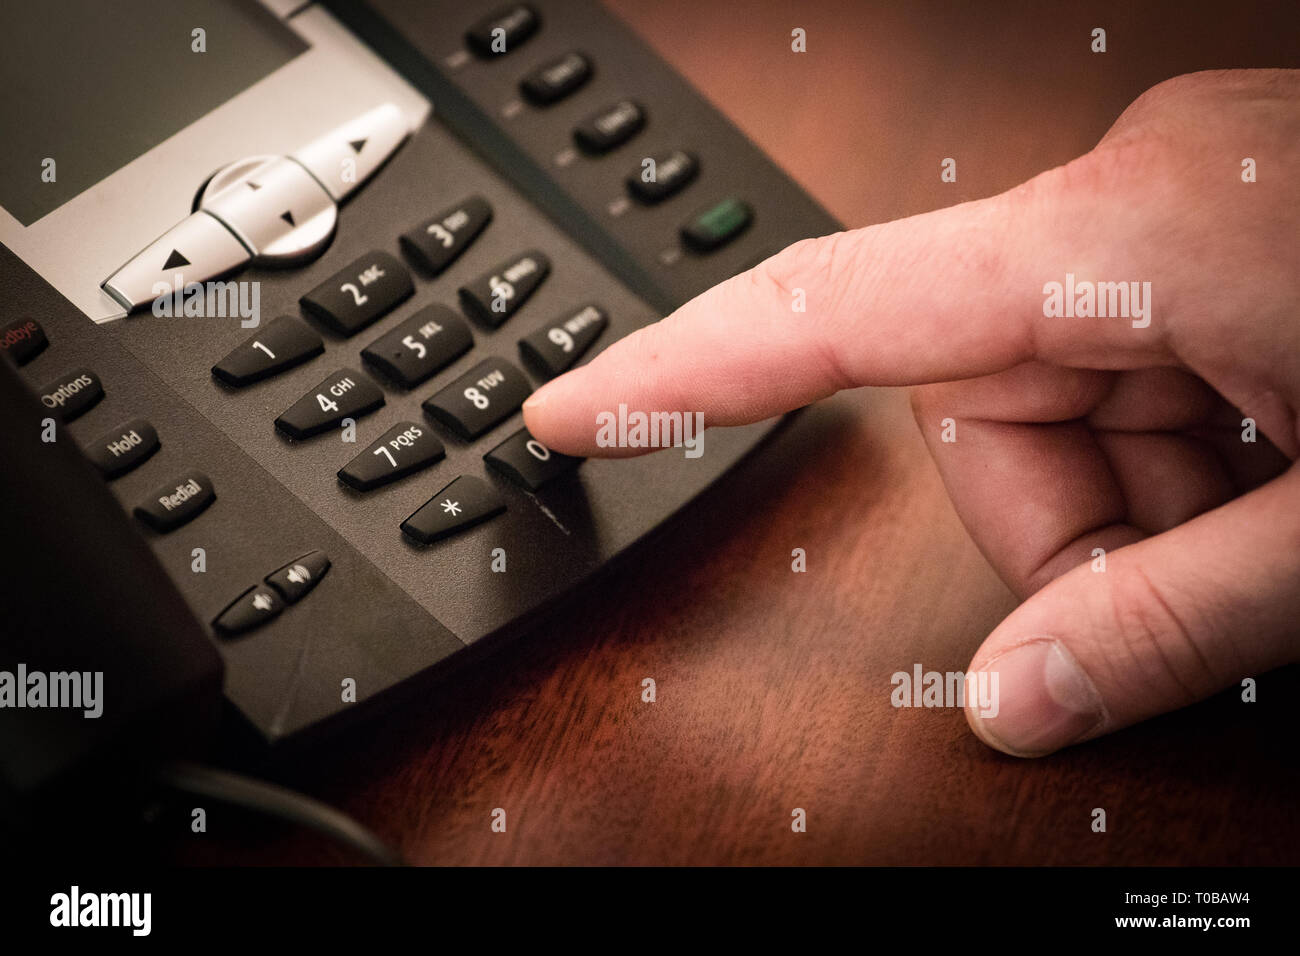 Finger dialing phone call on touch tone telephone. - Stock Image